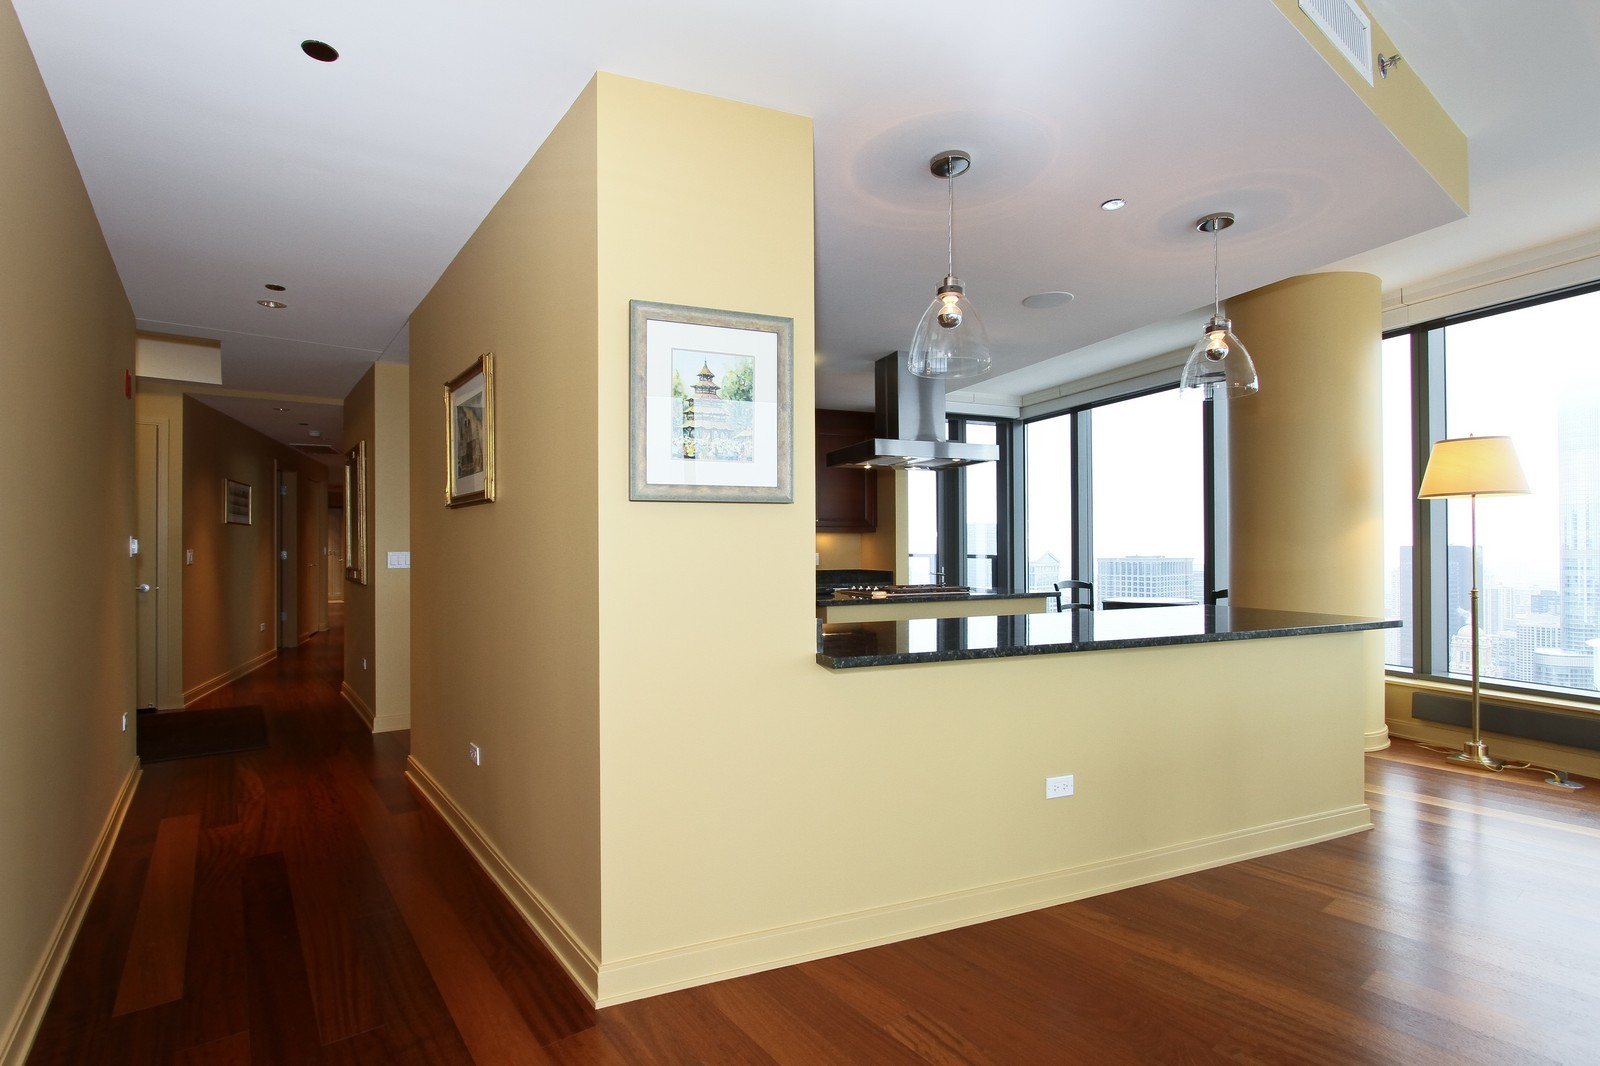 Real Estate Photography - 60 E Monroe, 6501, Chicago, IL, 60603 - Hallway